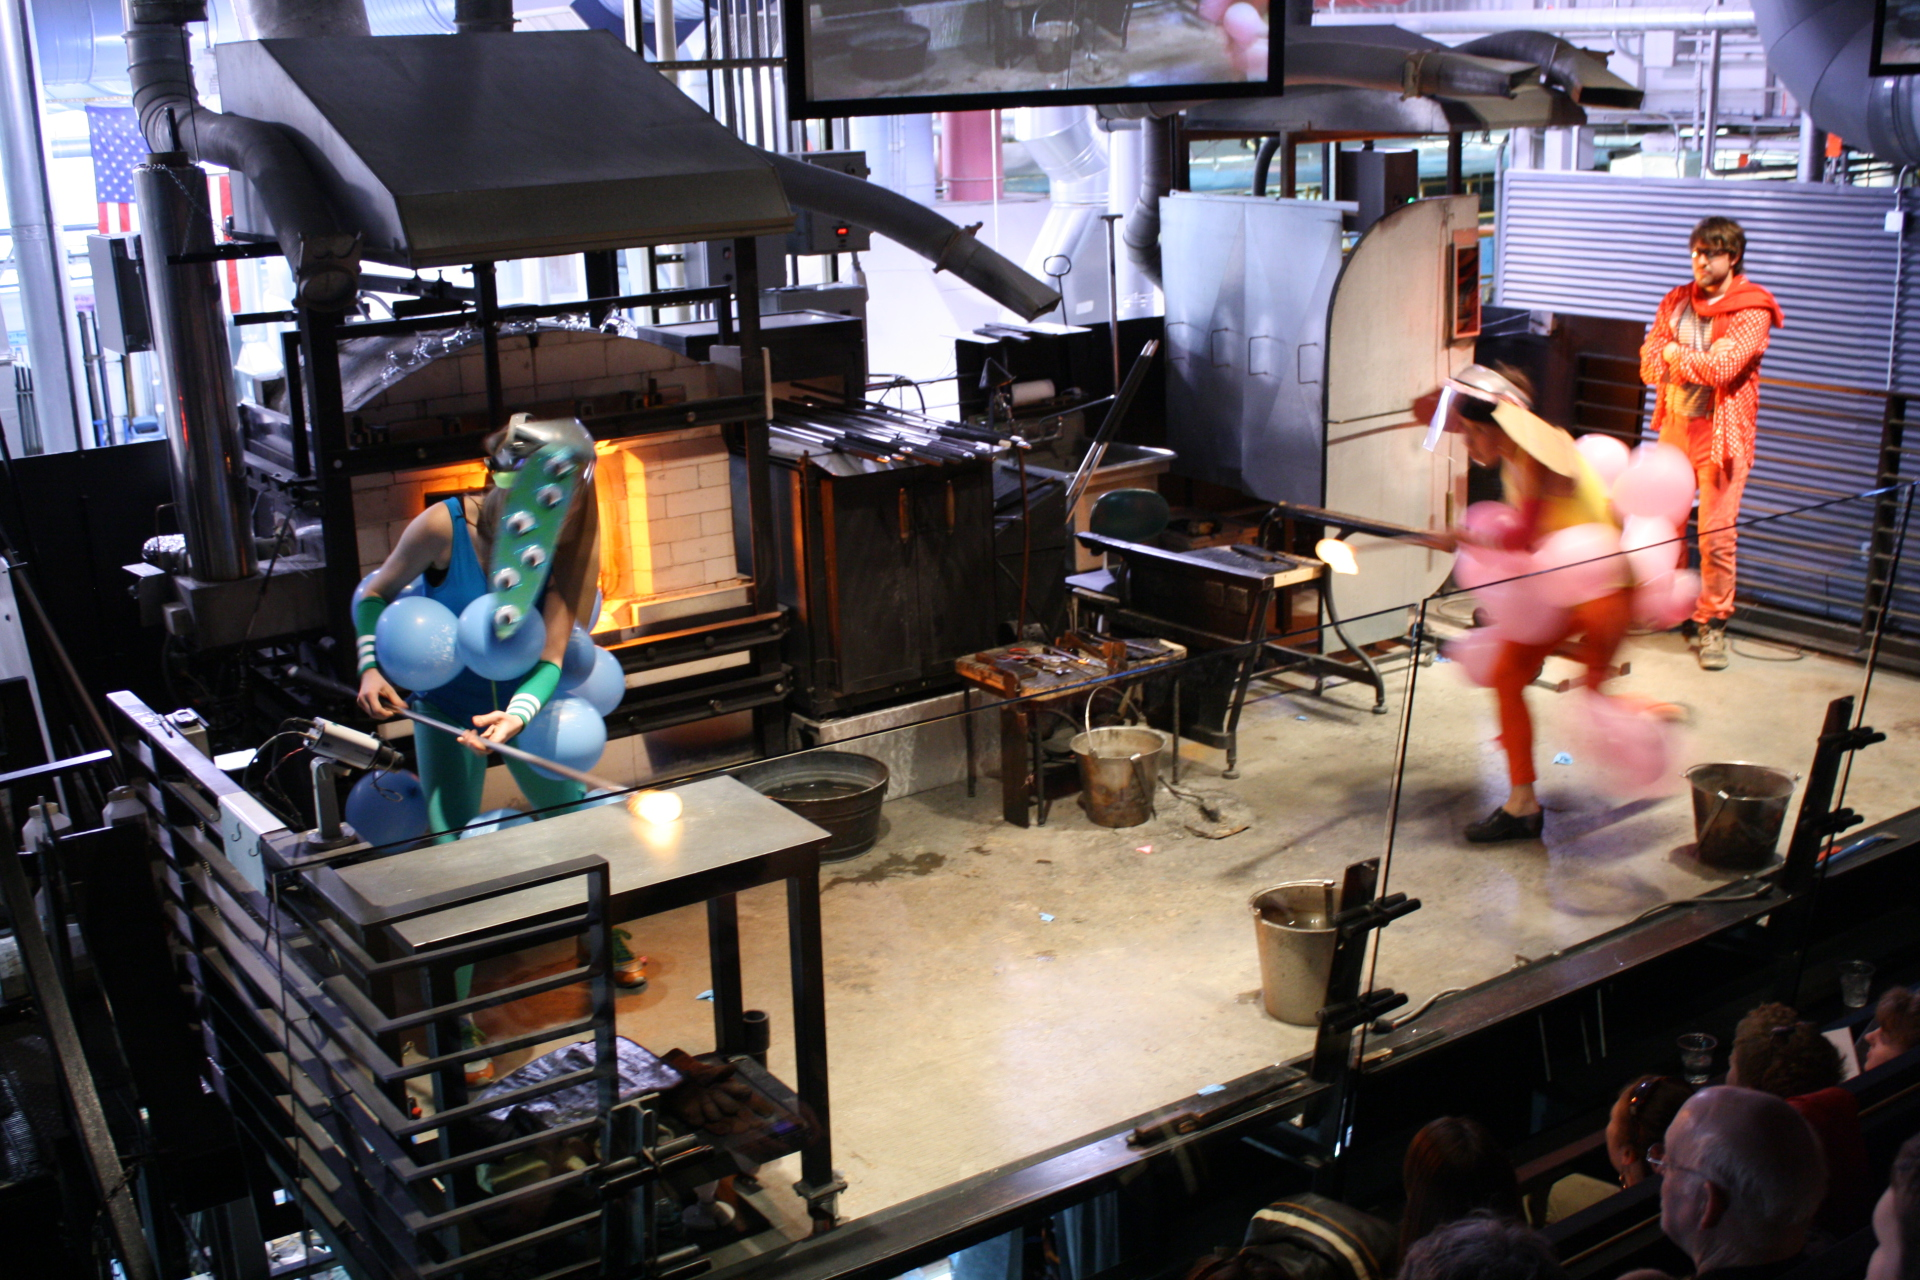 A glassblower in an unusual pink costume runs across the hotshop stage with molten glass on the end of a blowpipe, towards another glassblower in a blue costume.